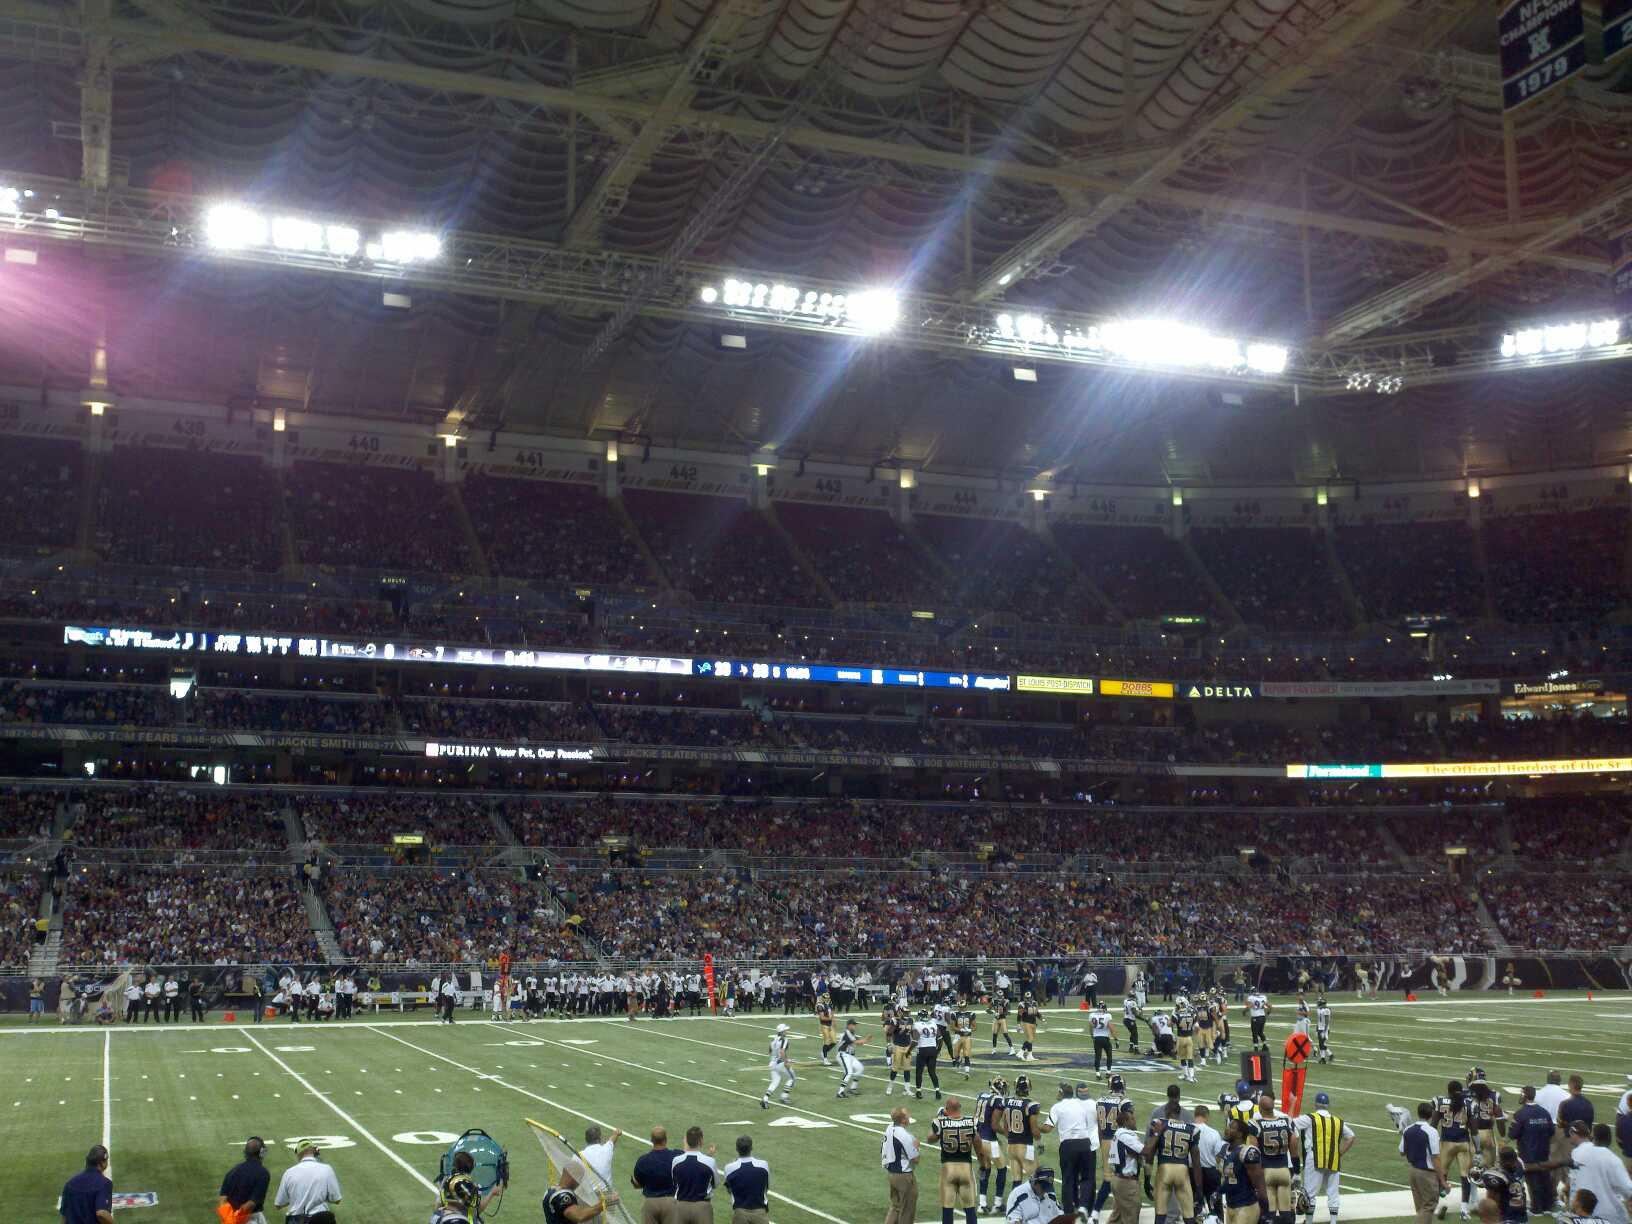 The Dome at America's Center Section 115 Row I Seat 21